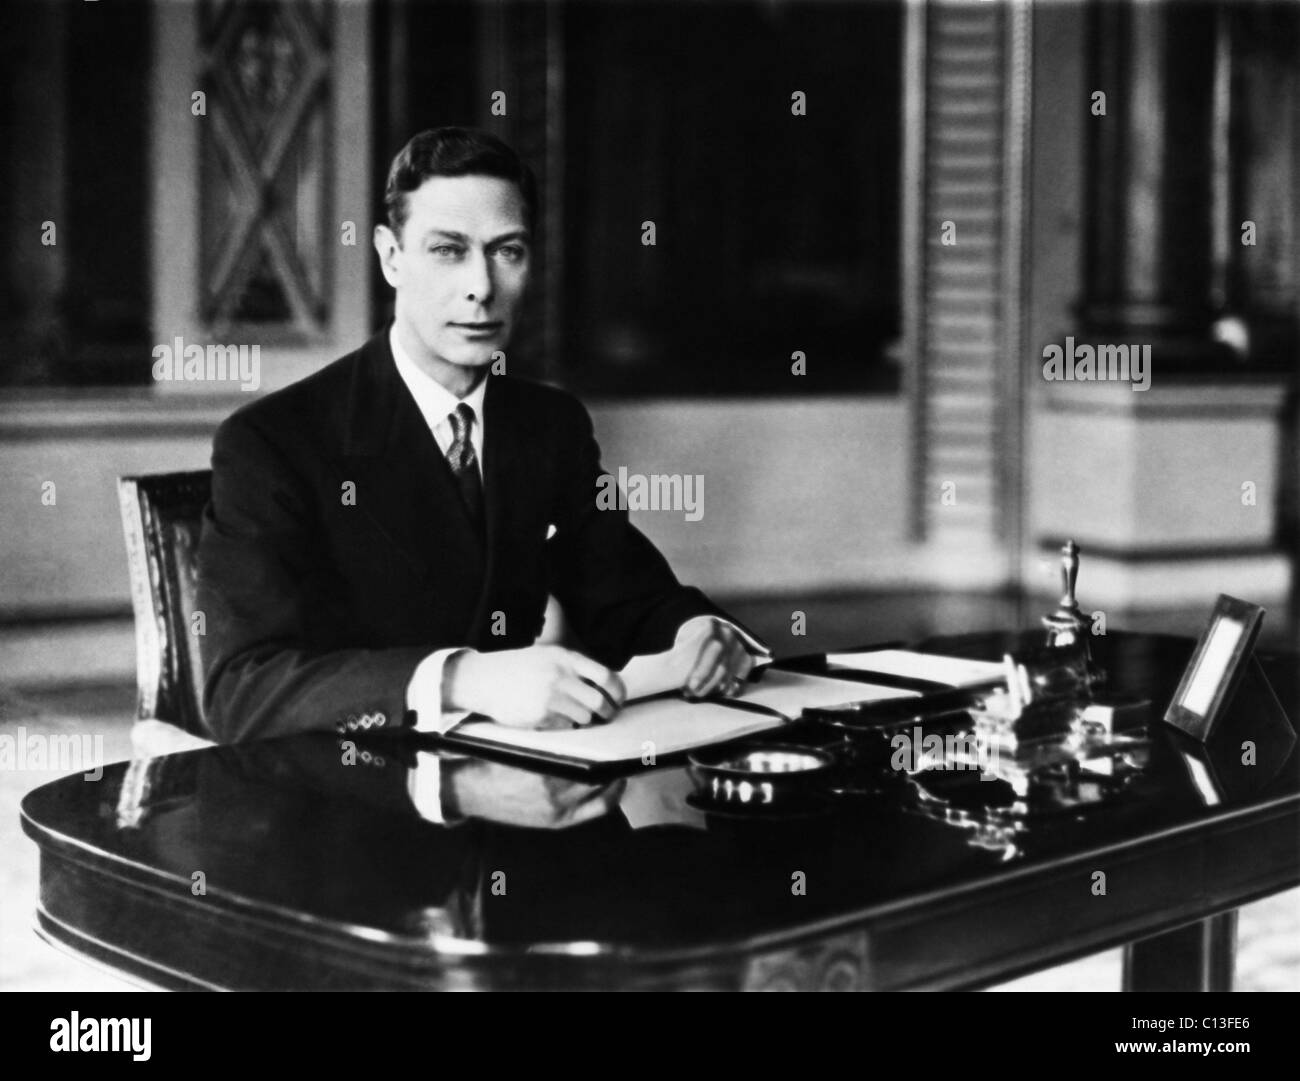 British Royalty. King George VI of England, 1937. - Stock Image